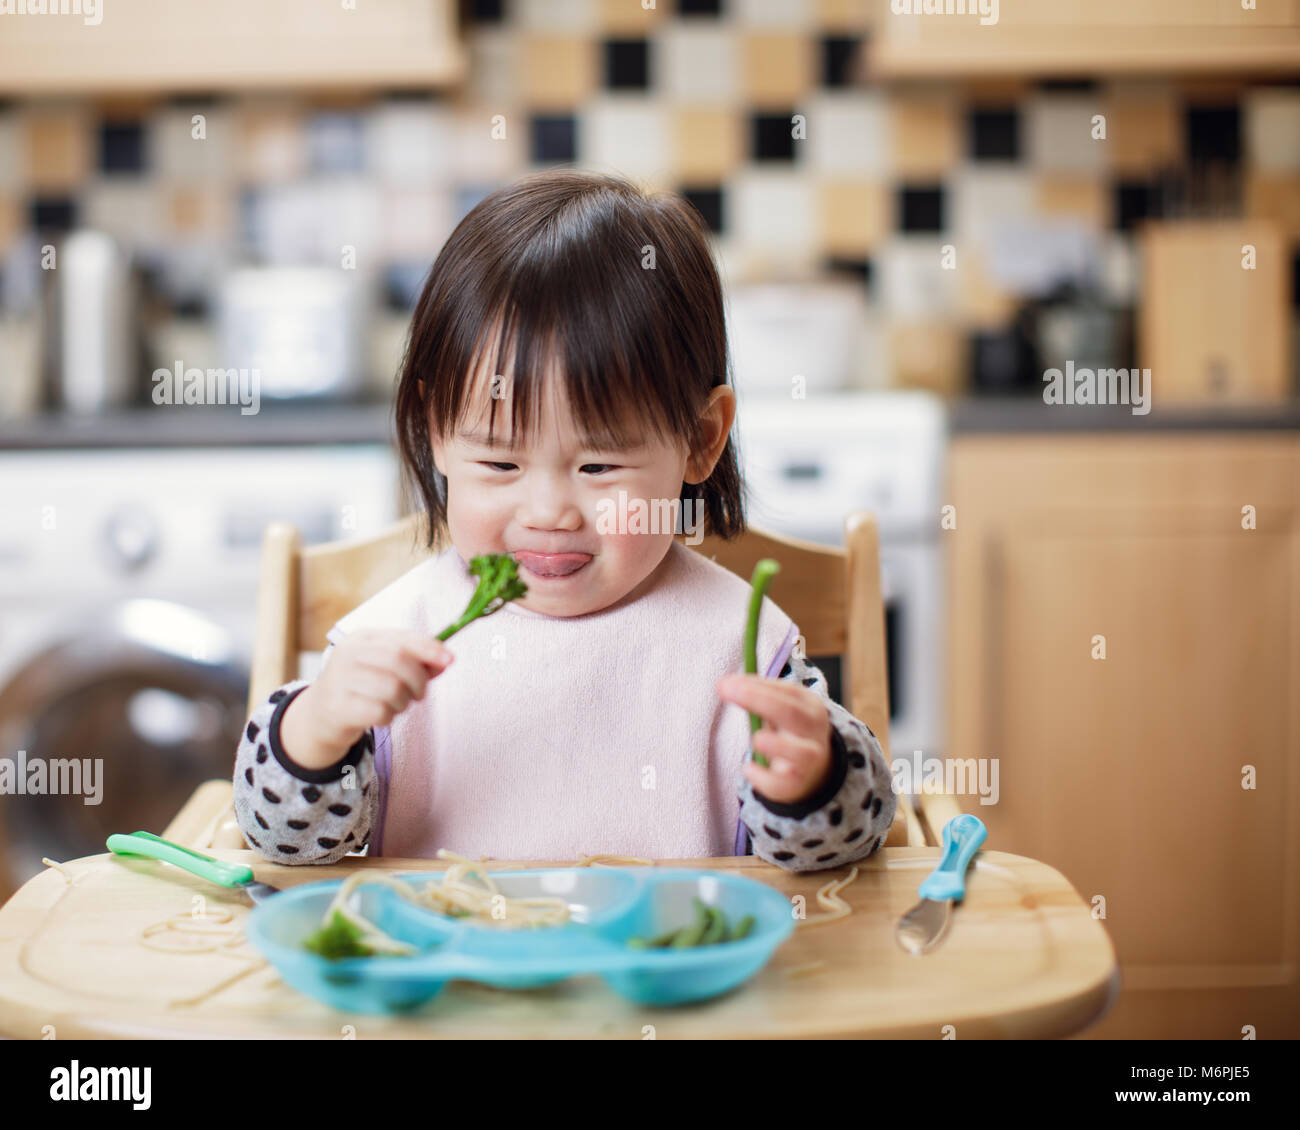 Japanese Kids Eating Stock Photos & Japanese Kids Eating